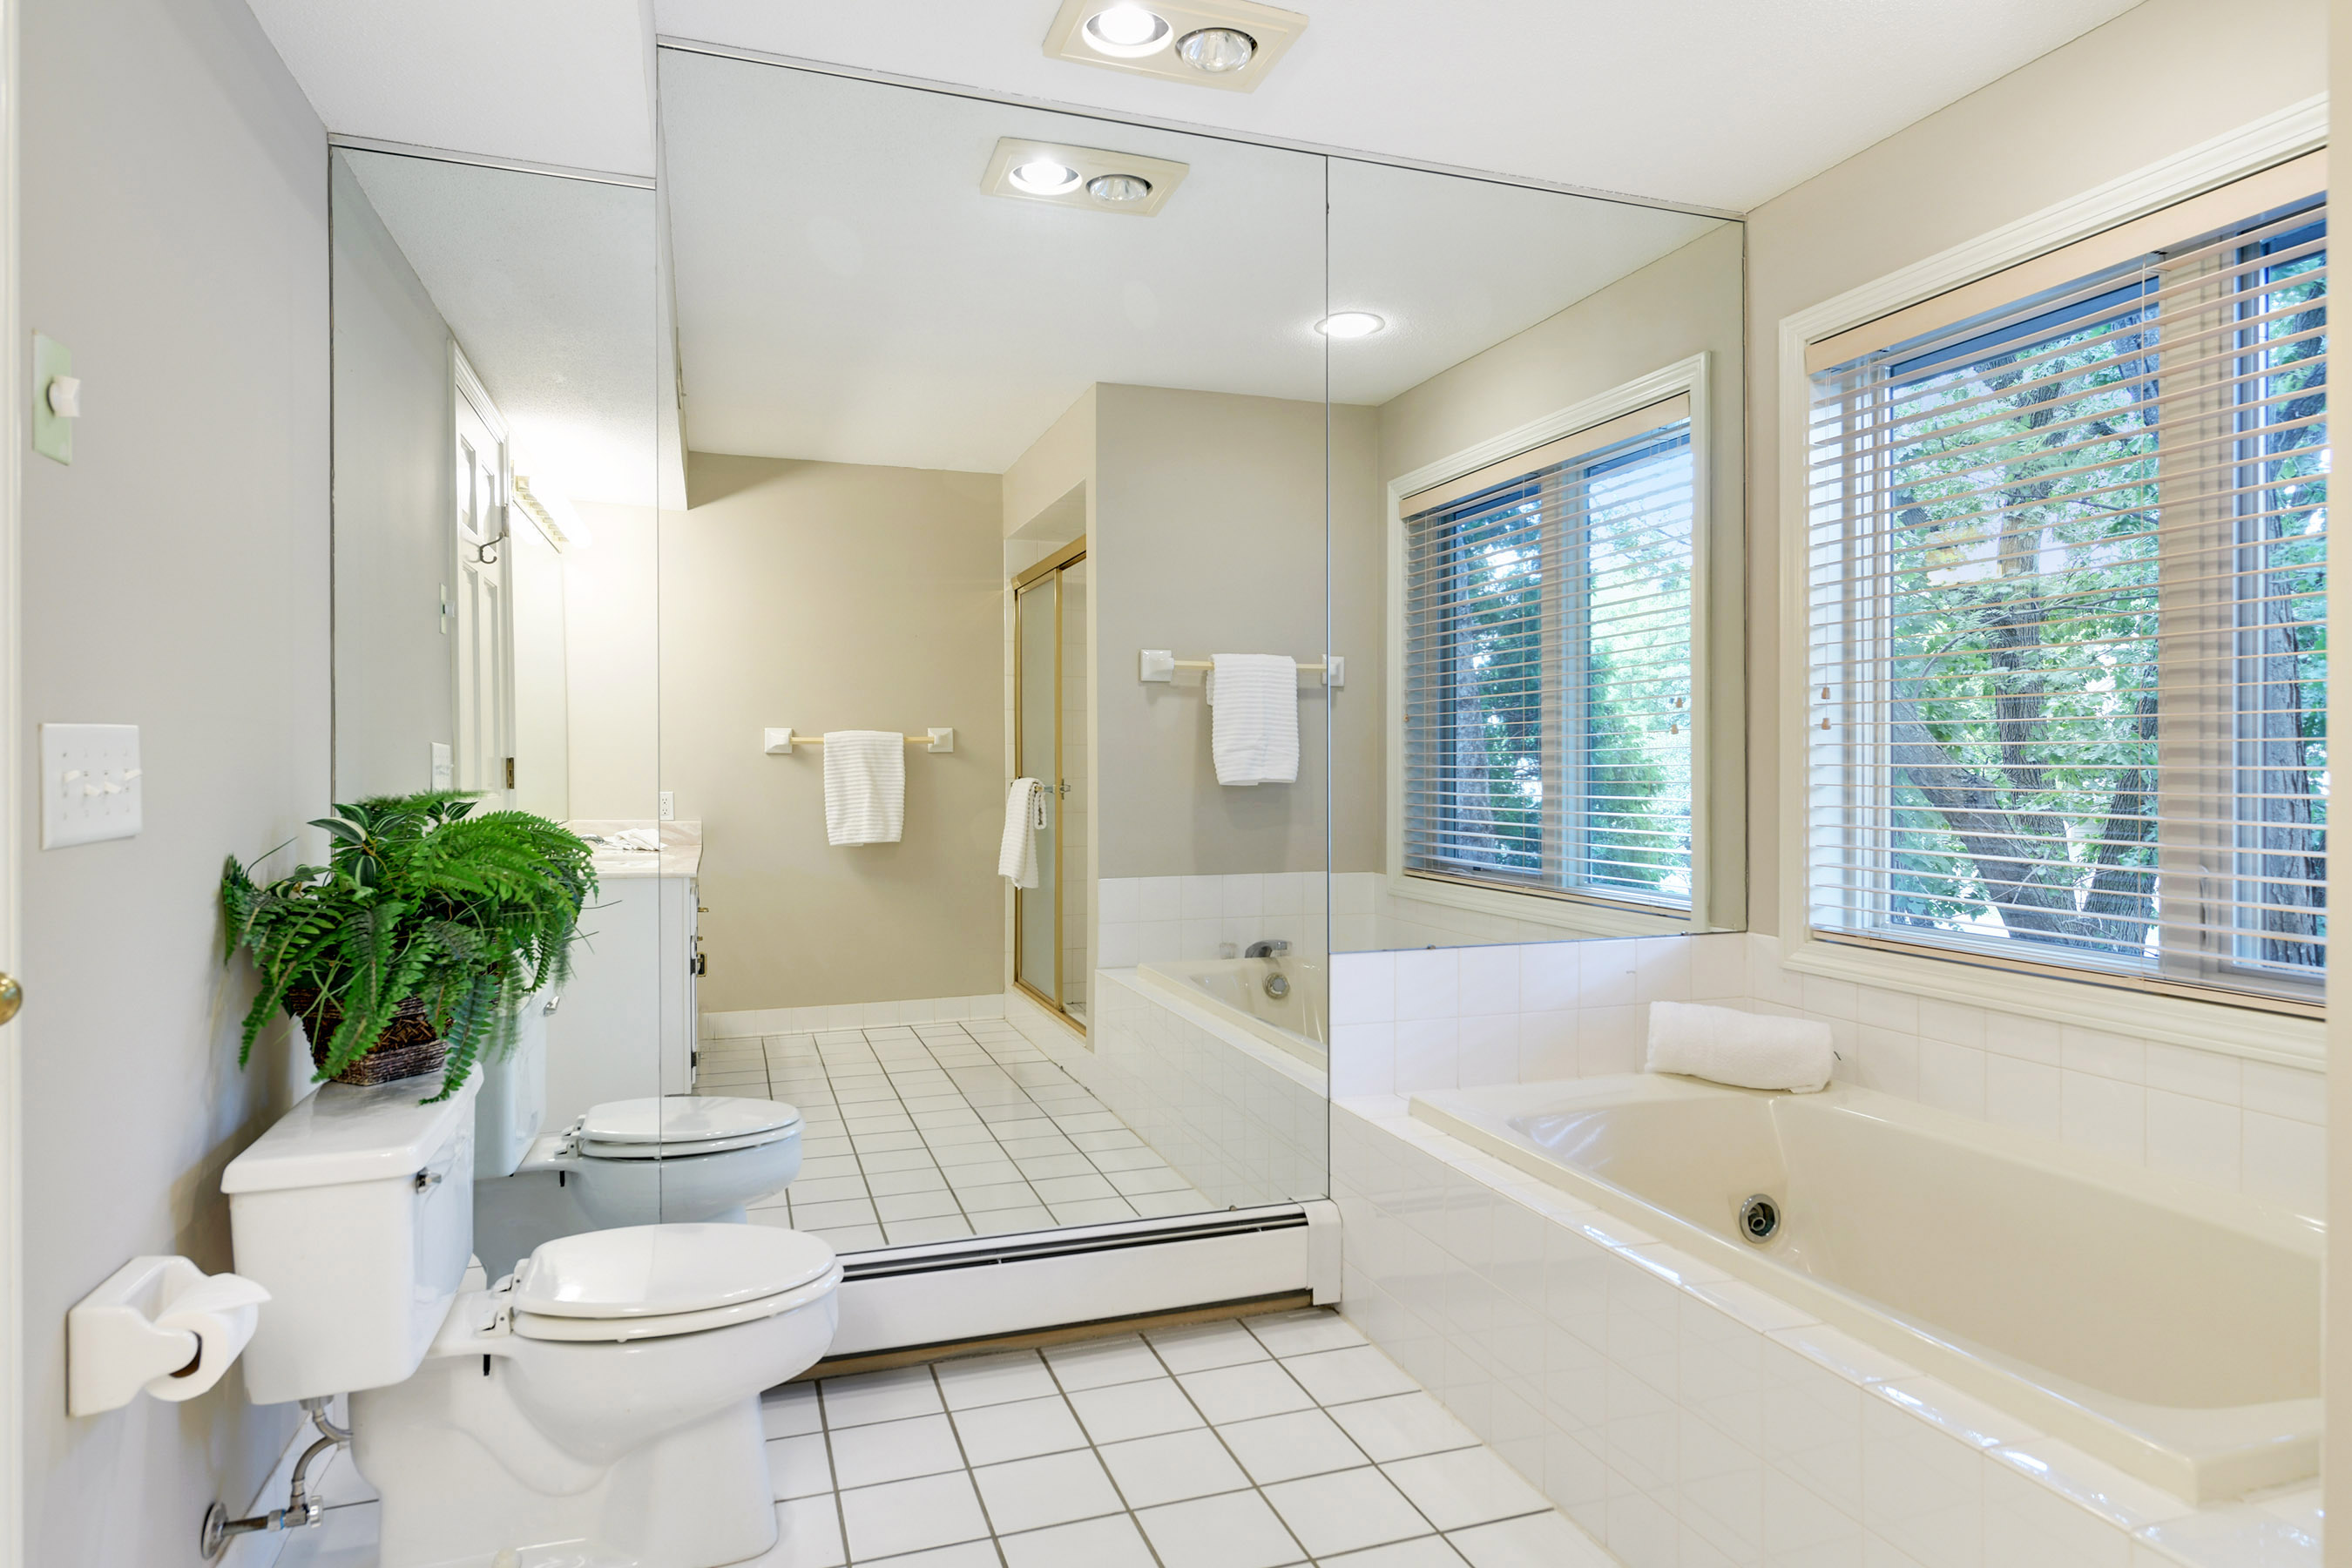 White tile bath with a separate shower and jetted tub